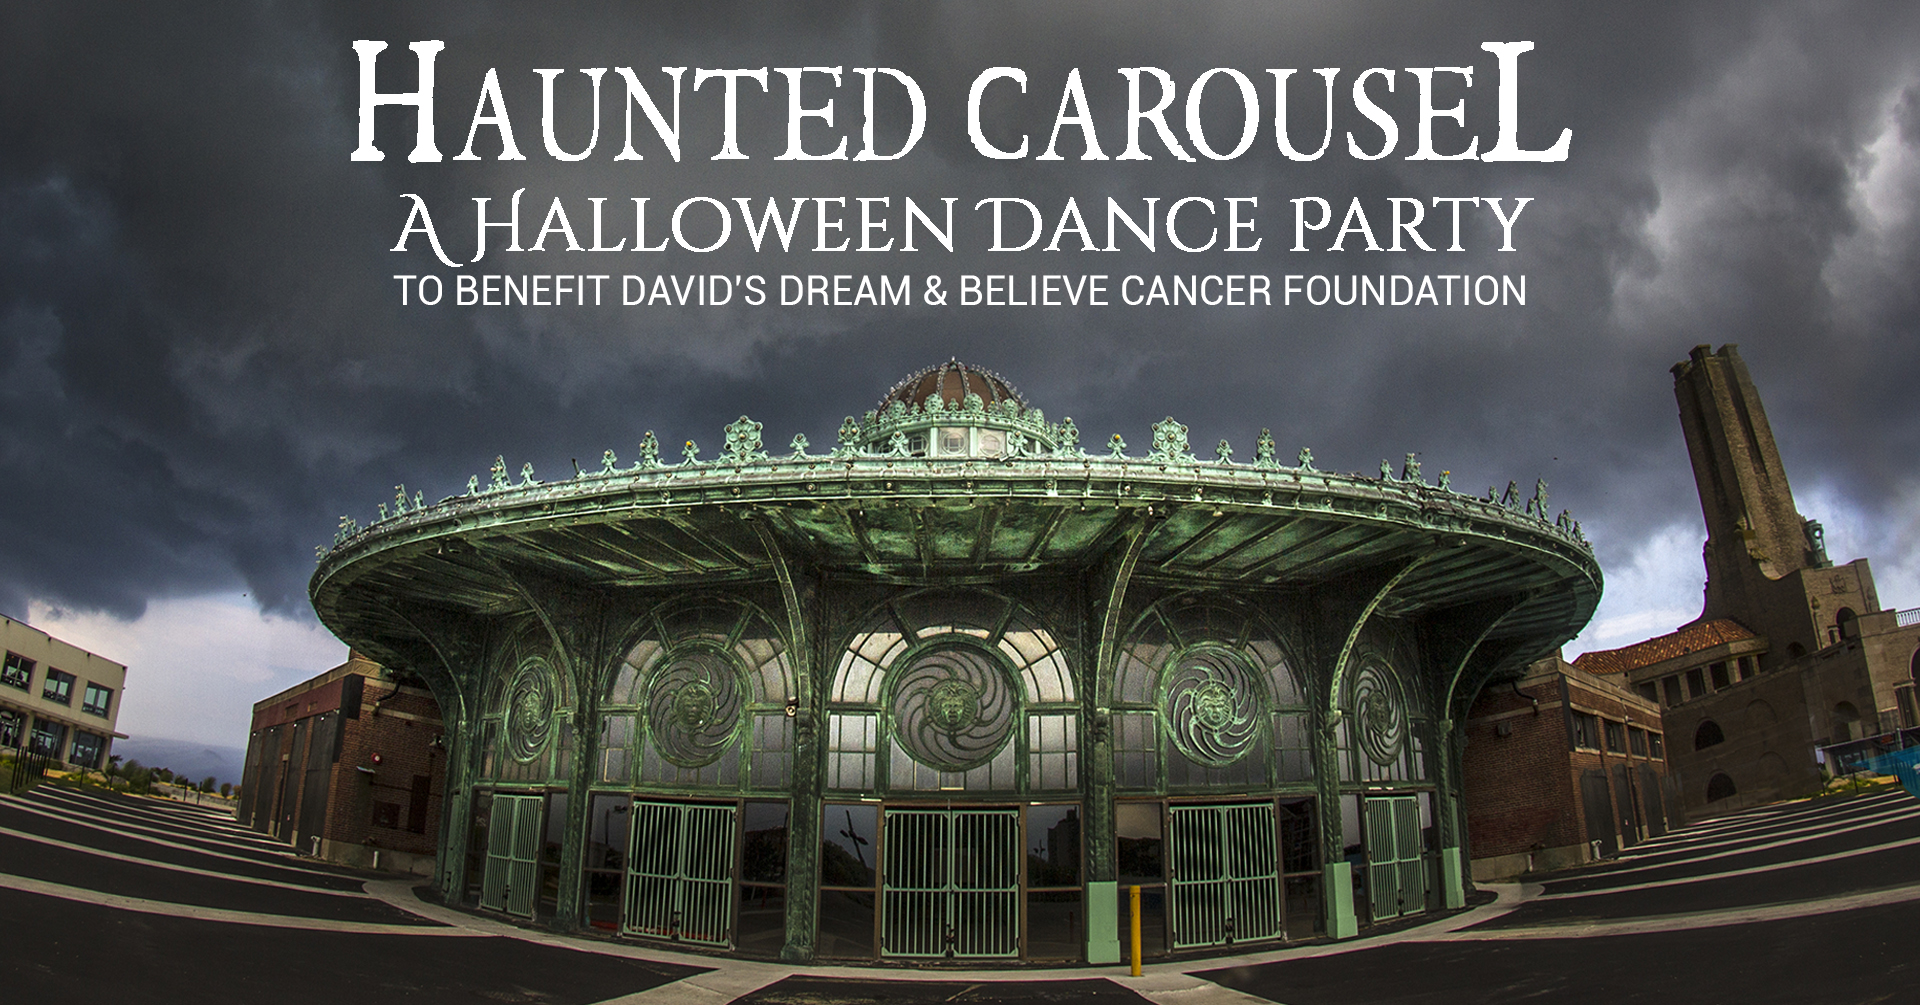 Haunted Carousel Cover Image Version 1